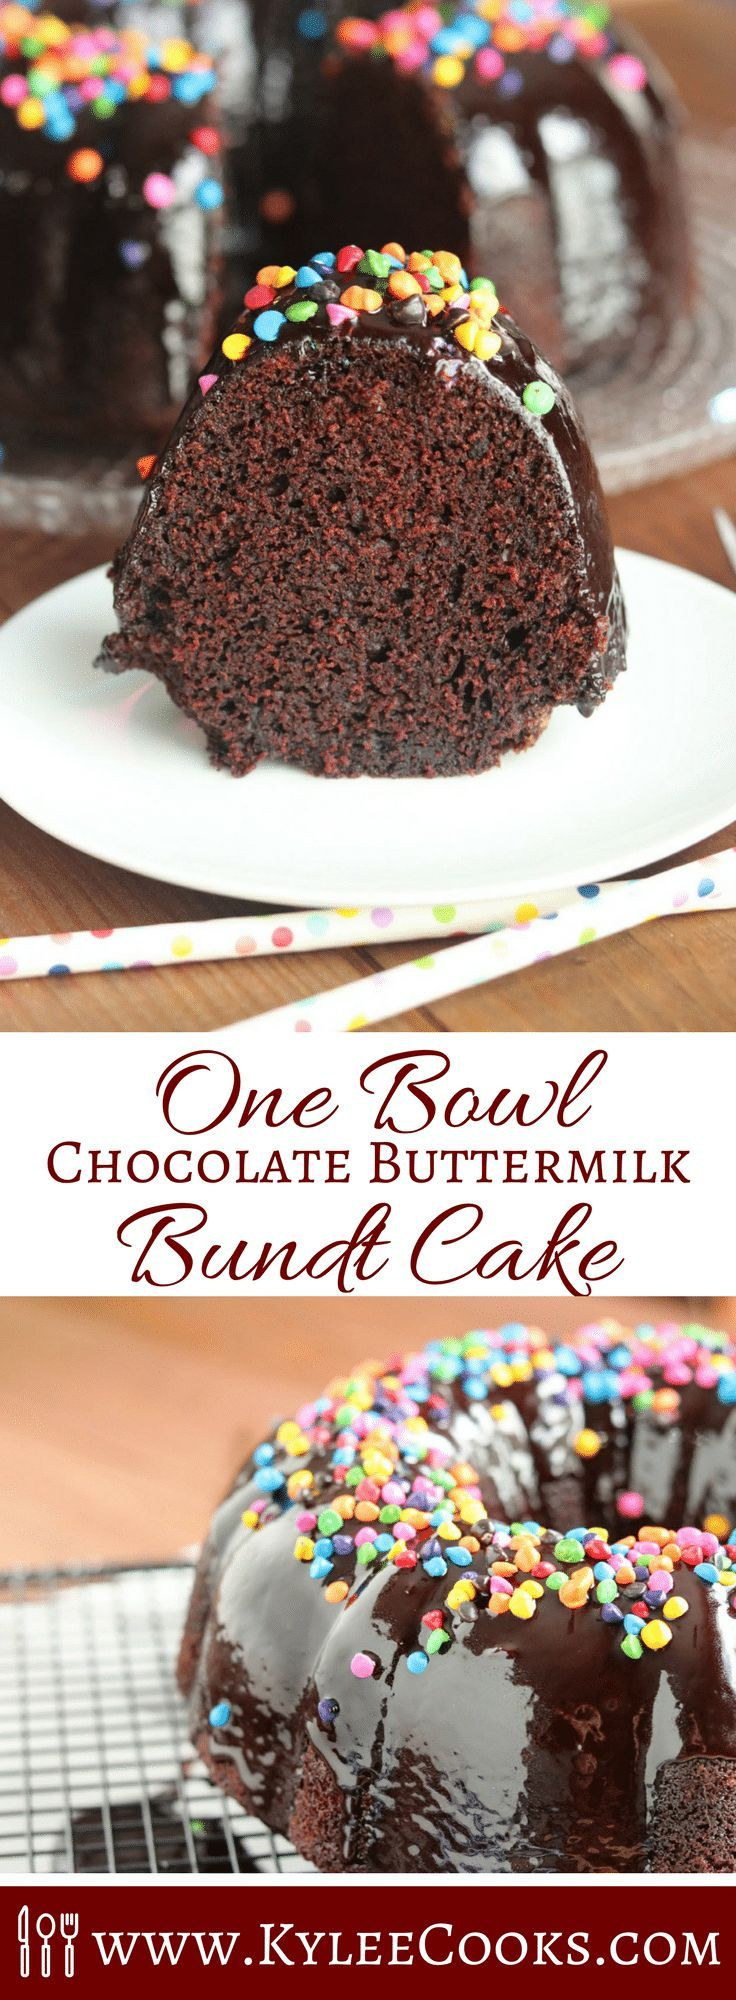 A one-bowl wonder, this easy but rich and decadent Chocolate Buttermilk Bundt Cake will satisfy chocolate lovers the world over!   #chocolate #bundt #cake #recipe #kyleecooks